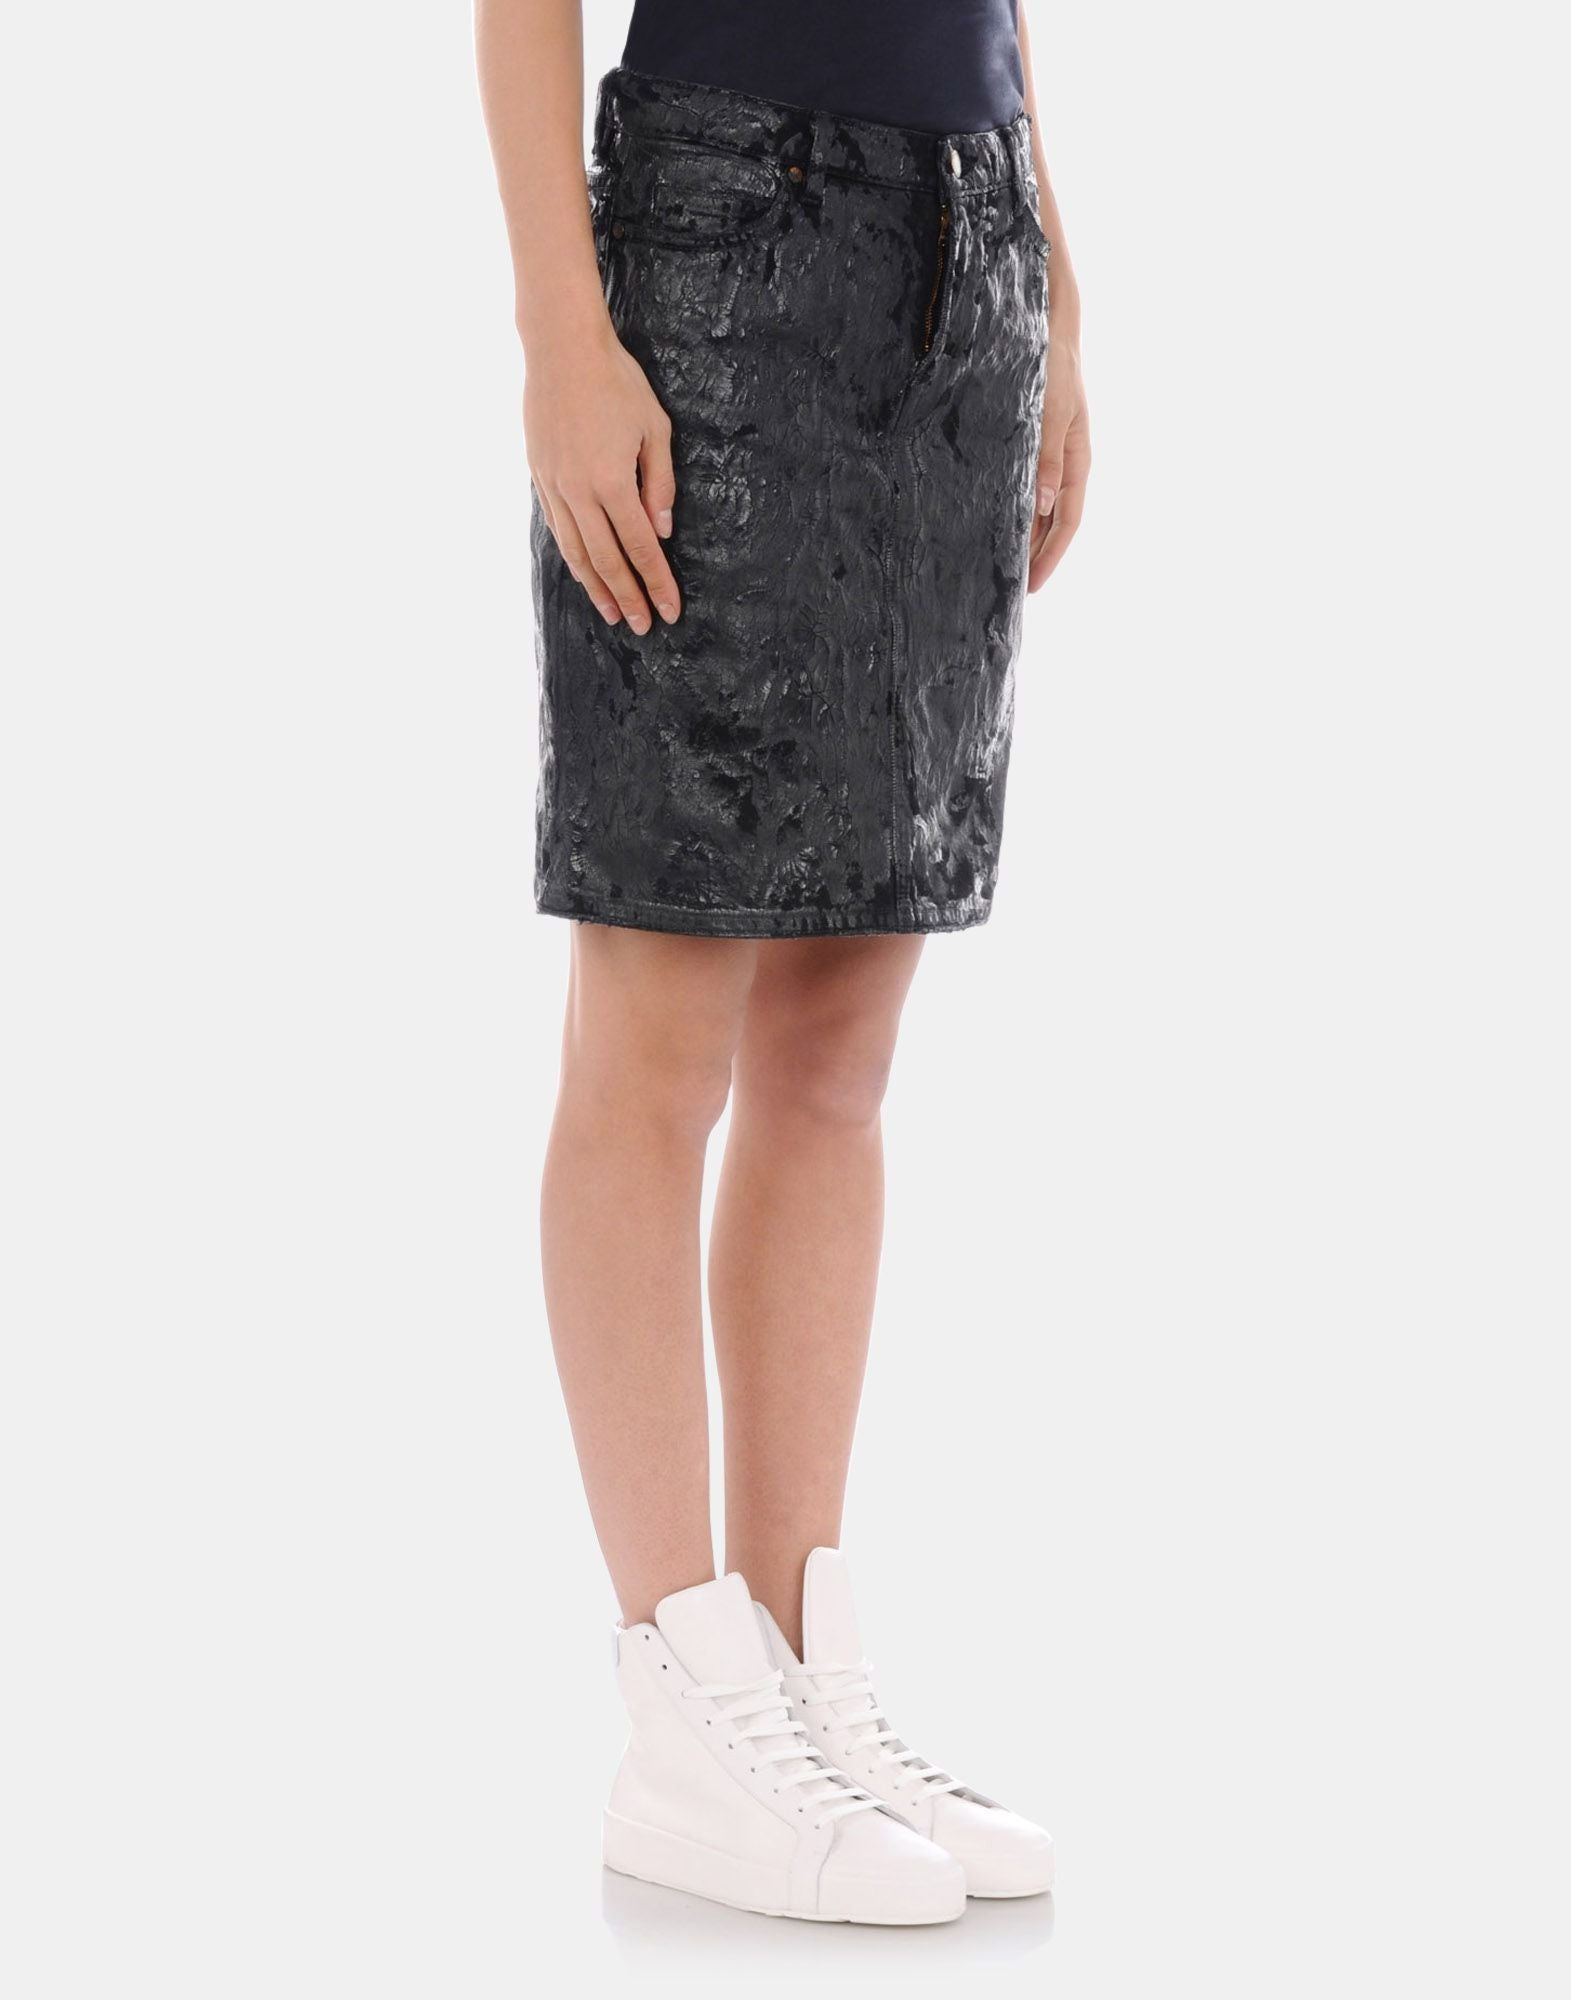 Jil Sander Denim Skirt